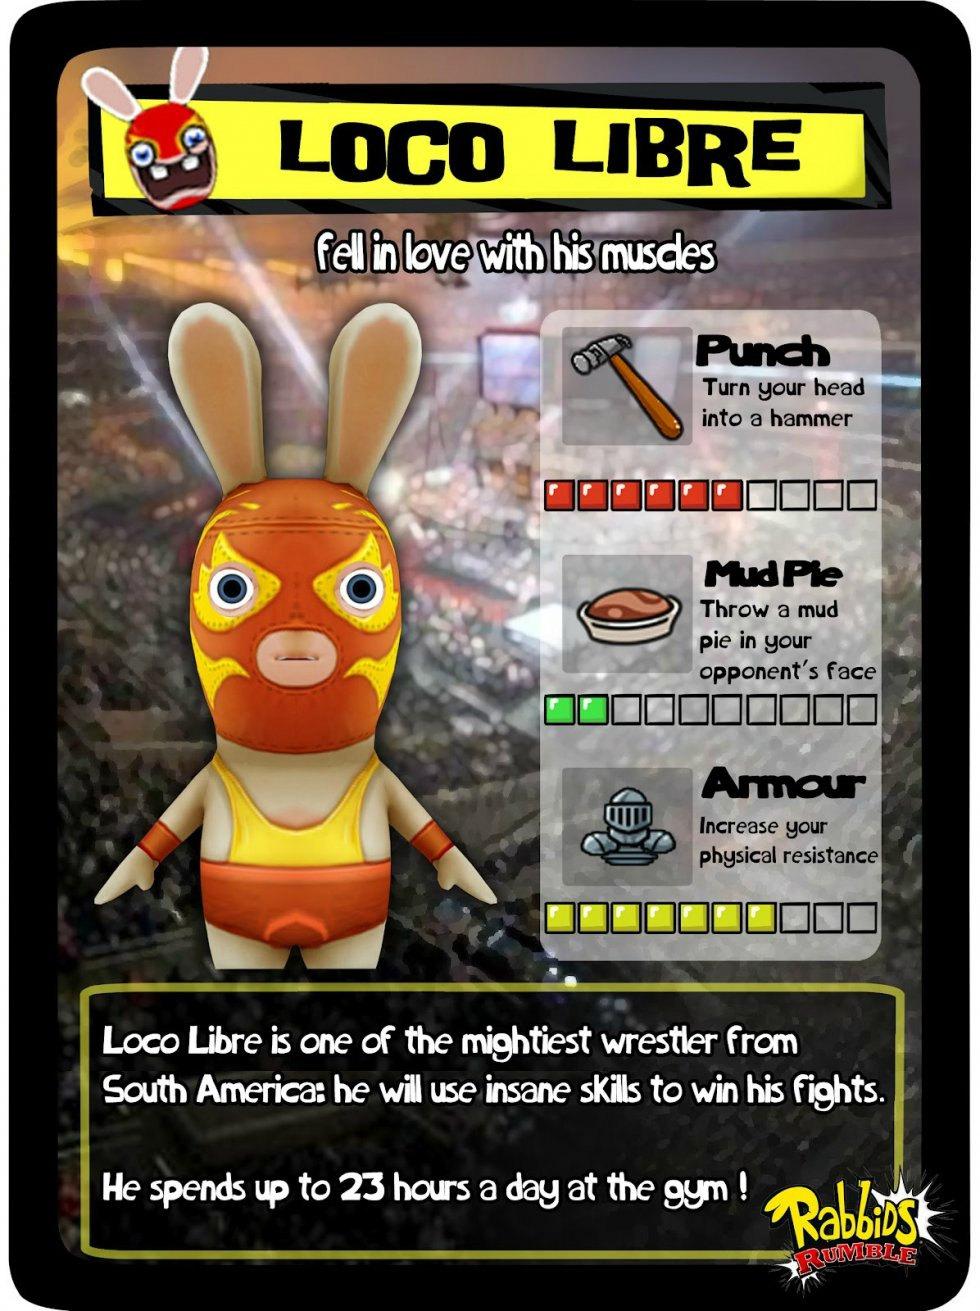 Les-Lapins-Cretins-Rabbids-Rumble_31-05-2012_art-4